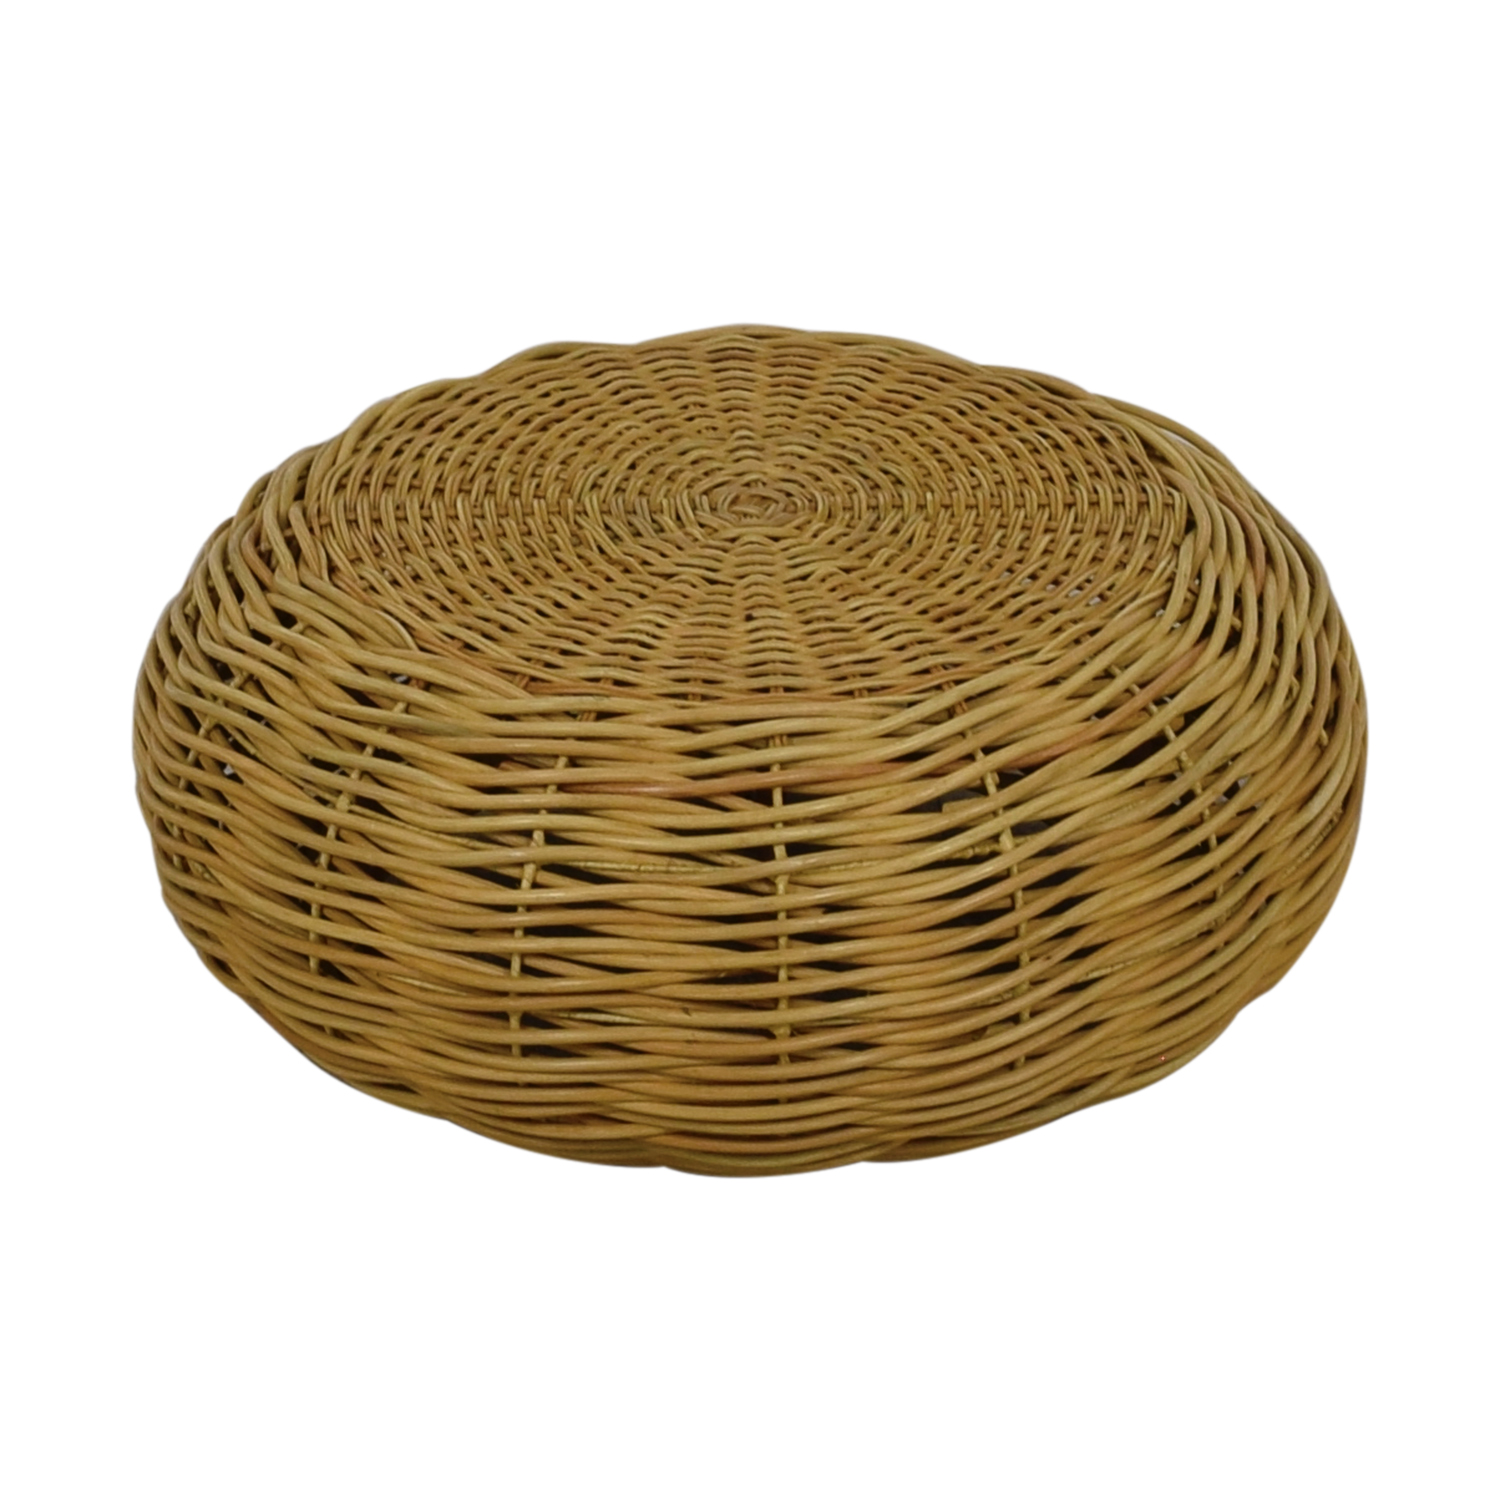 Wicker Coffee Table on sale